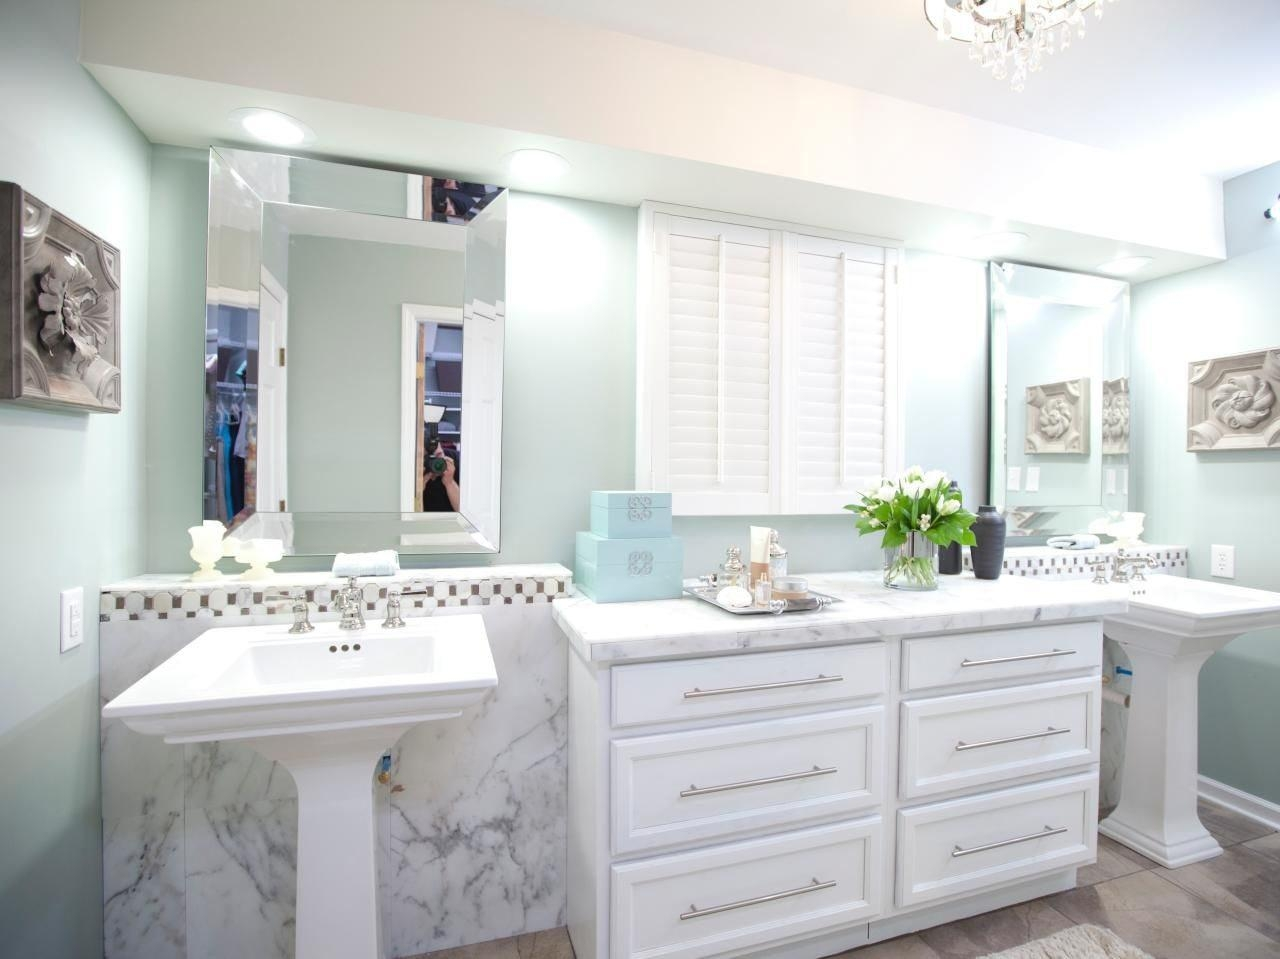 Wonderful Bathroom With Walk In Shower And Ornate Wooden Mirror Regarding Ornate Bathroom Mirror (Image 20 of 20)